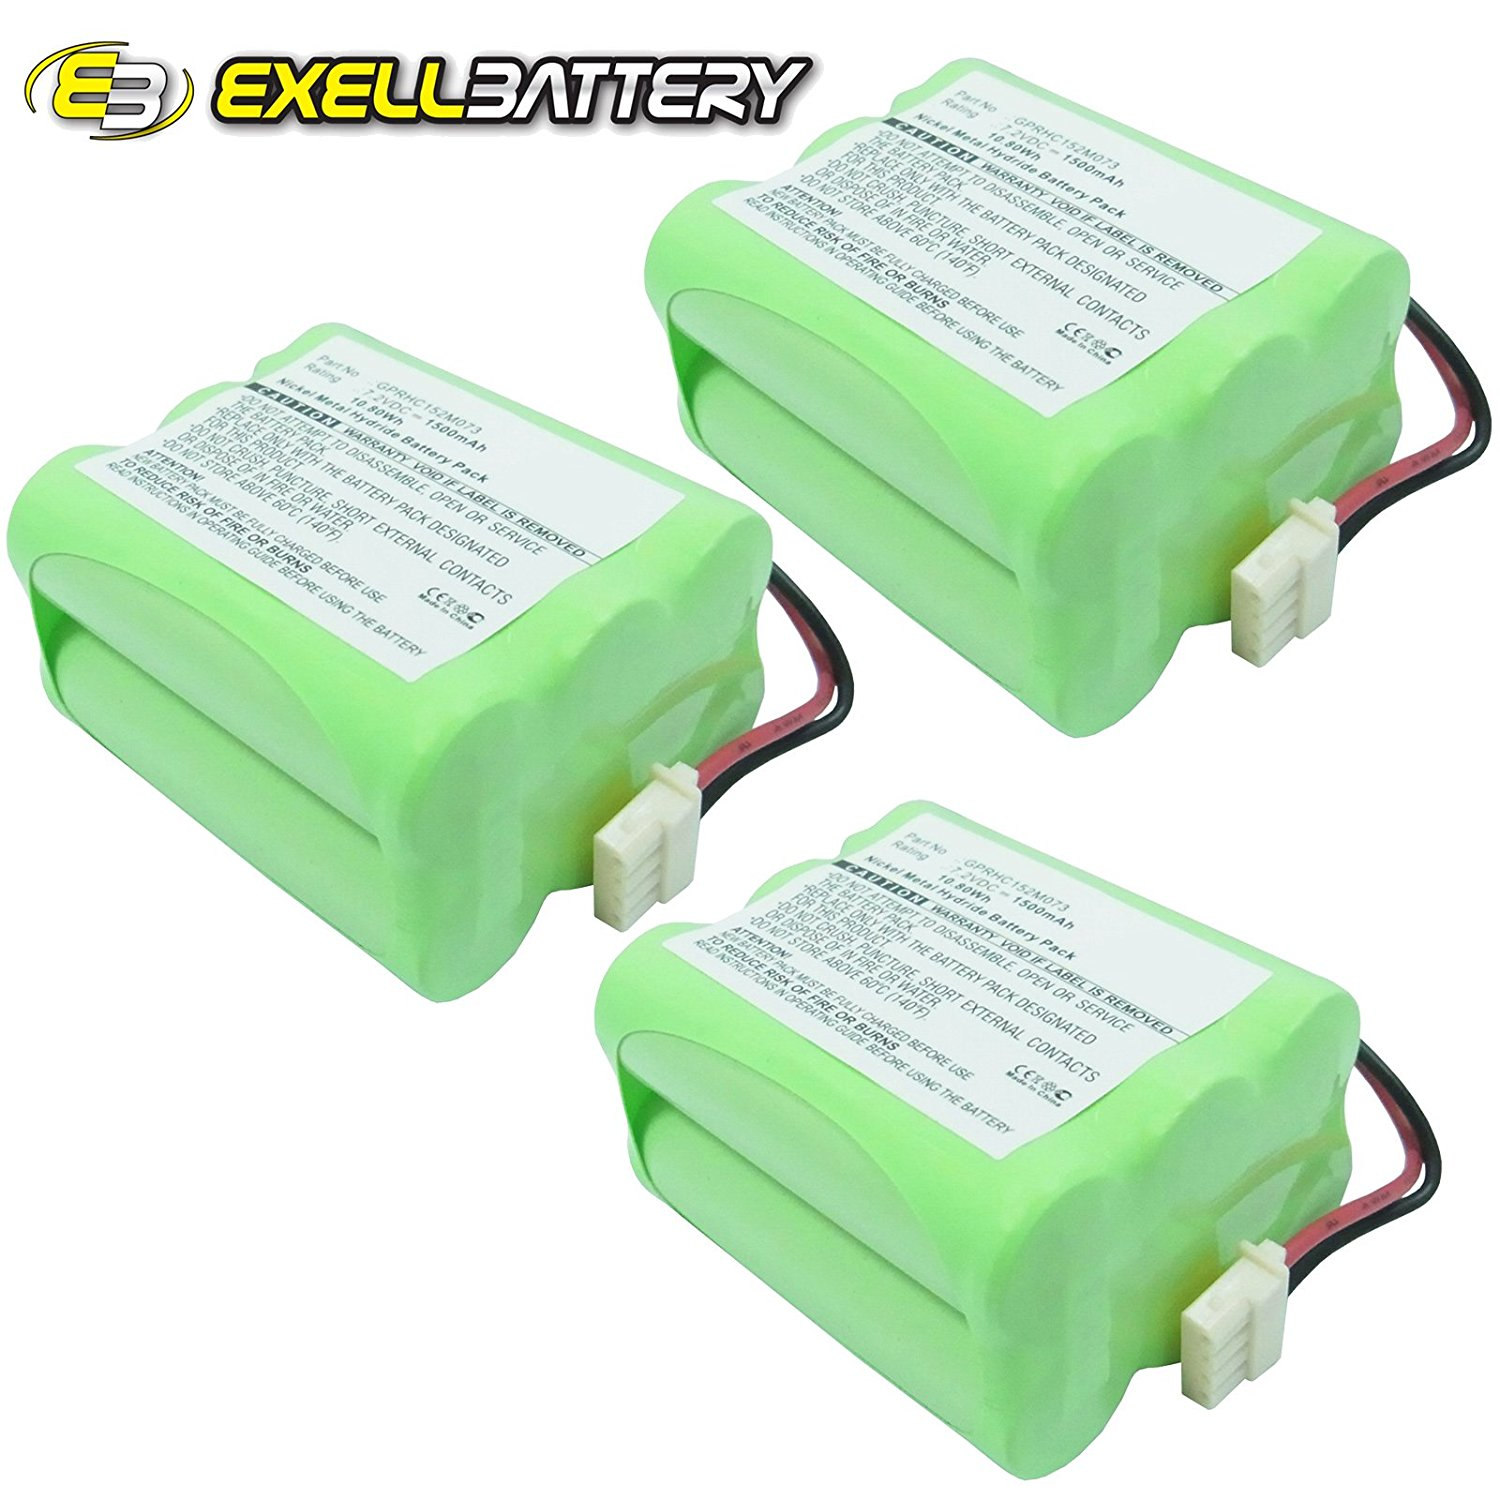 3x Exell 7.2V Battery Fits iRobot Braava 320 321 Replaces 4408927 GPRHC152M073